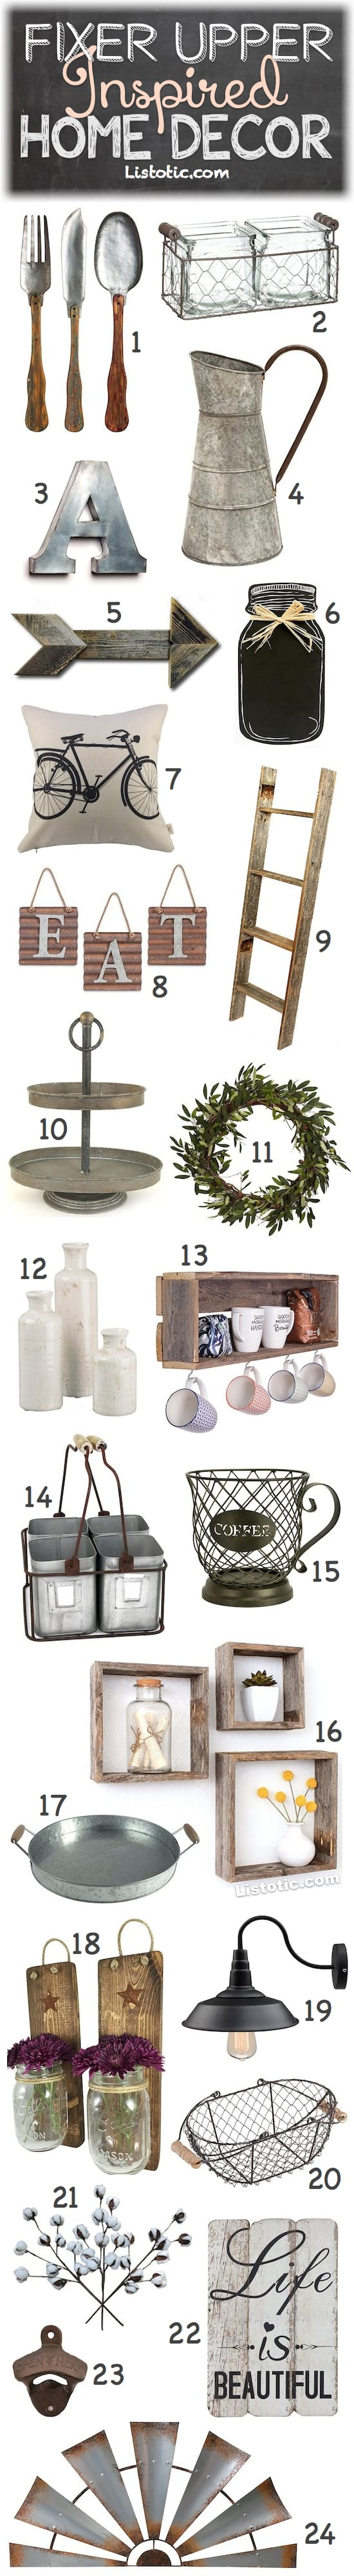 Fixer Upper Home Decor Ideas and products for your living room, kitchen, bathrooms, bedrooms or any room of the house! Farmhouse decor on a budget. Listotic.com